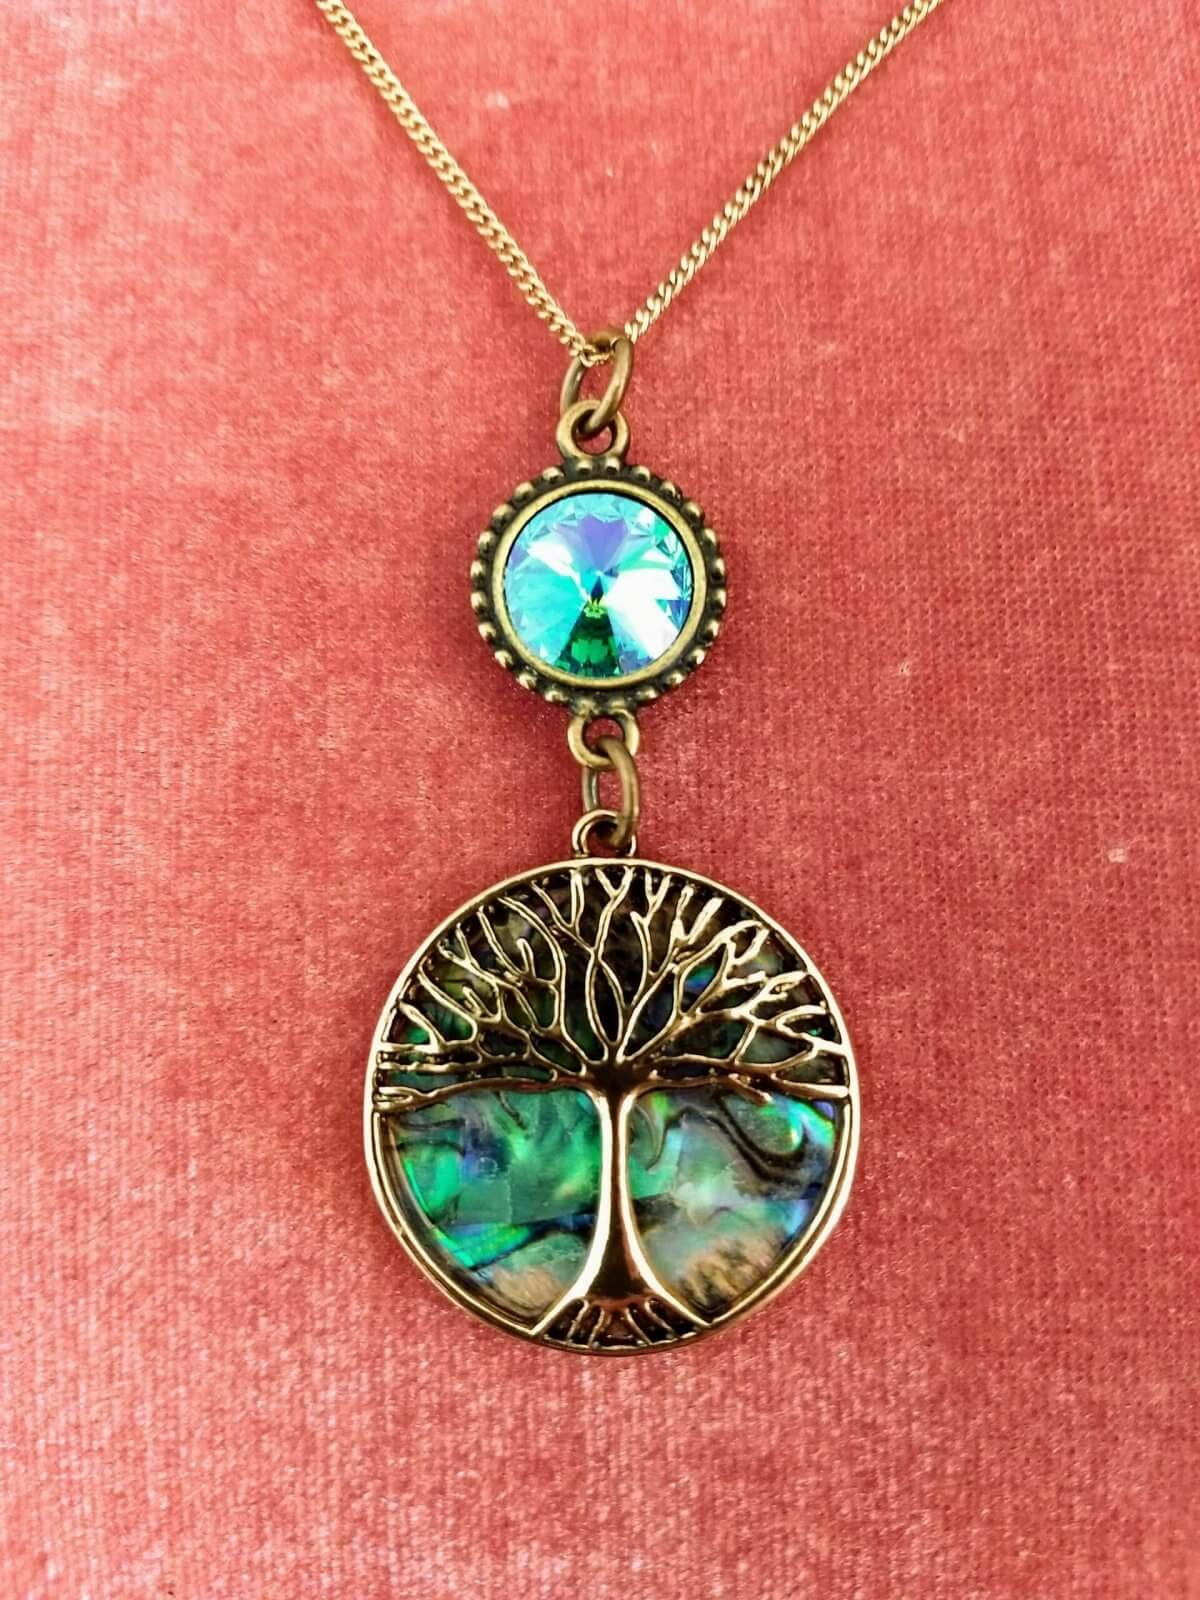 https://lorirae.com/wp-content/uploads/2020/05/Abalone-tree-of-Life-glacier-blue-necklace-gold-oxidized-1-scaled-e1588778230668.jpg